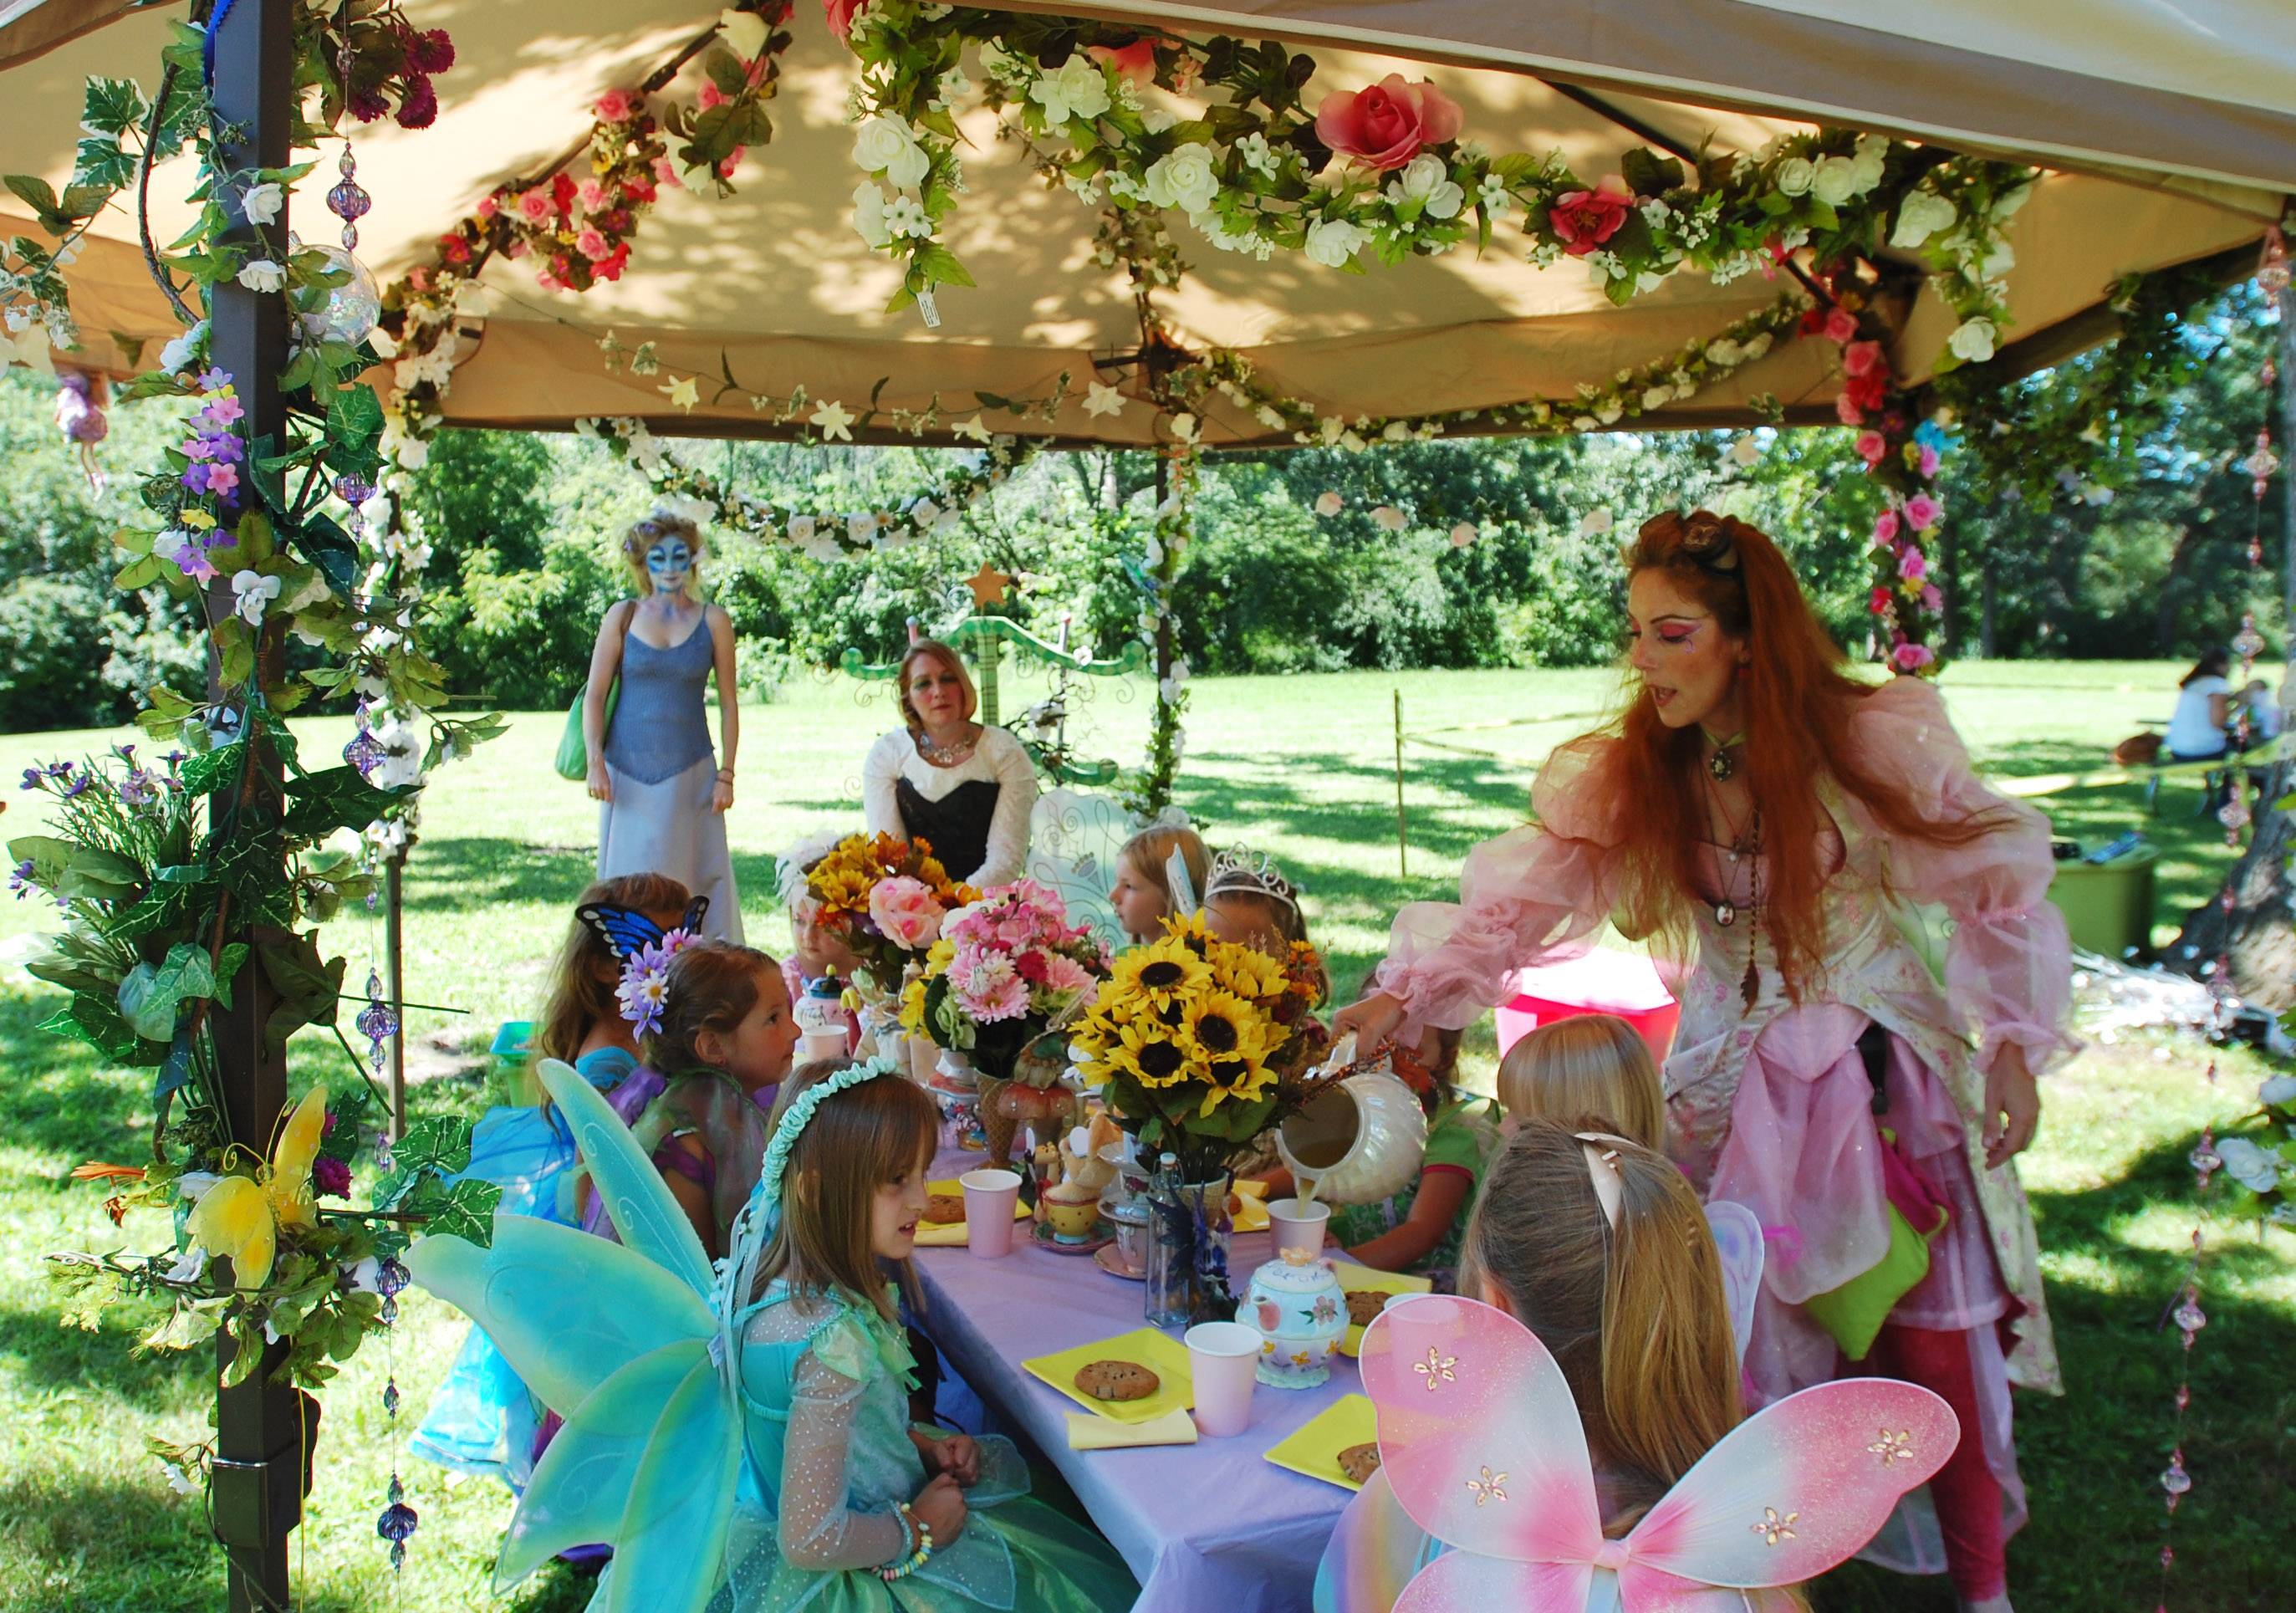 The World of Faeries Festival is Saturday and Sunday at Vasa Park in South Elgin. Last year, girls sat down for a faerie tea party where they snacked on cookies, listened to stories and sang songs.